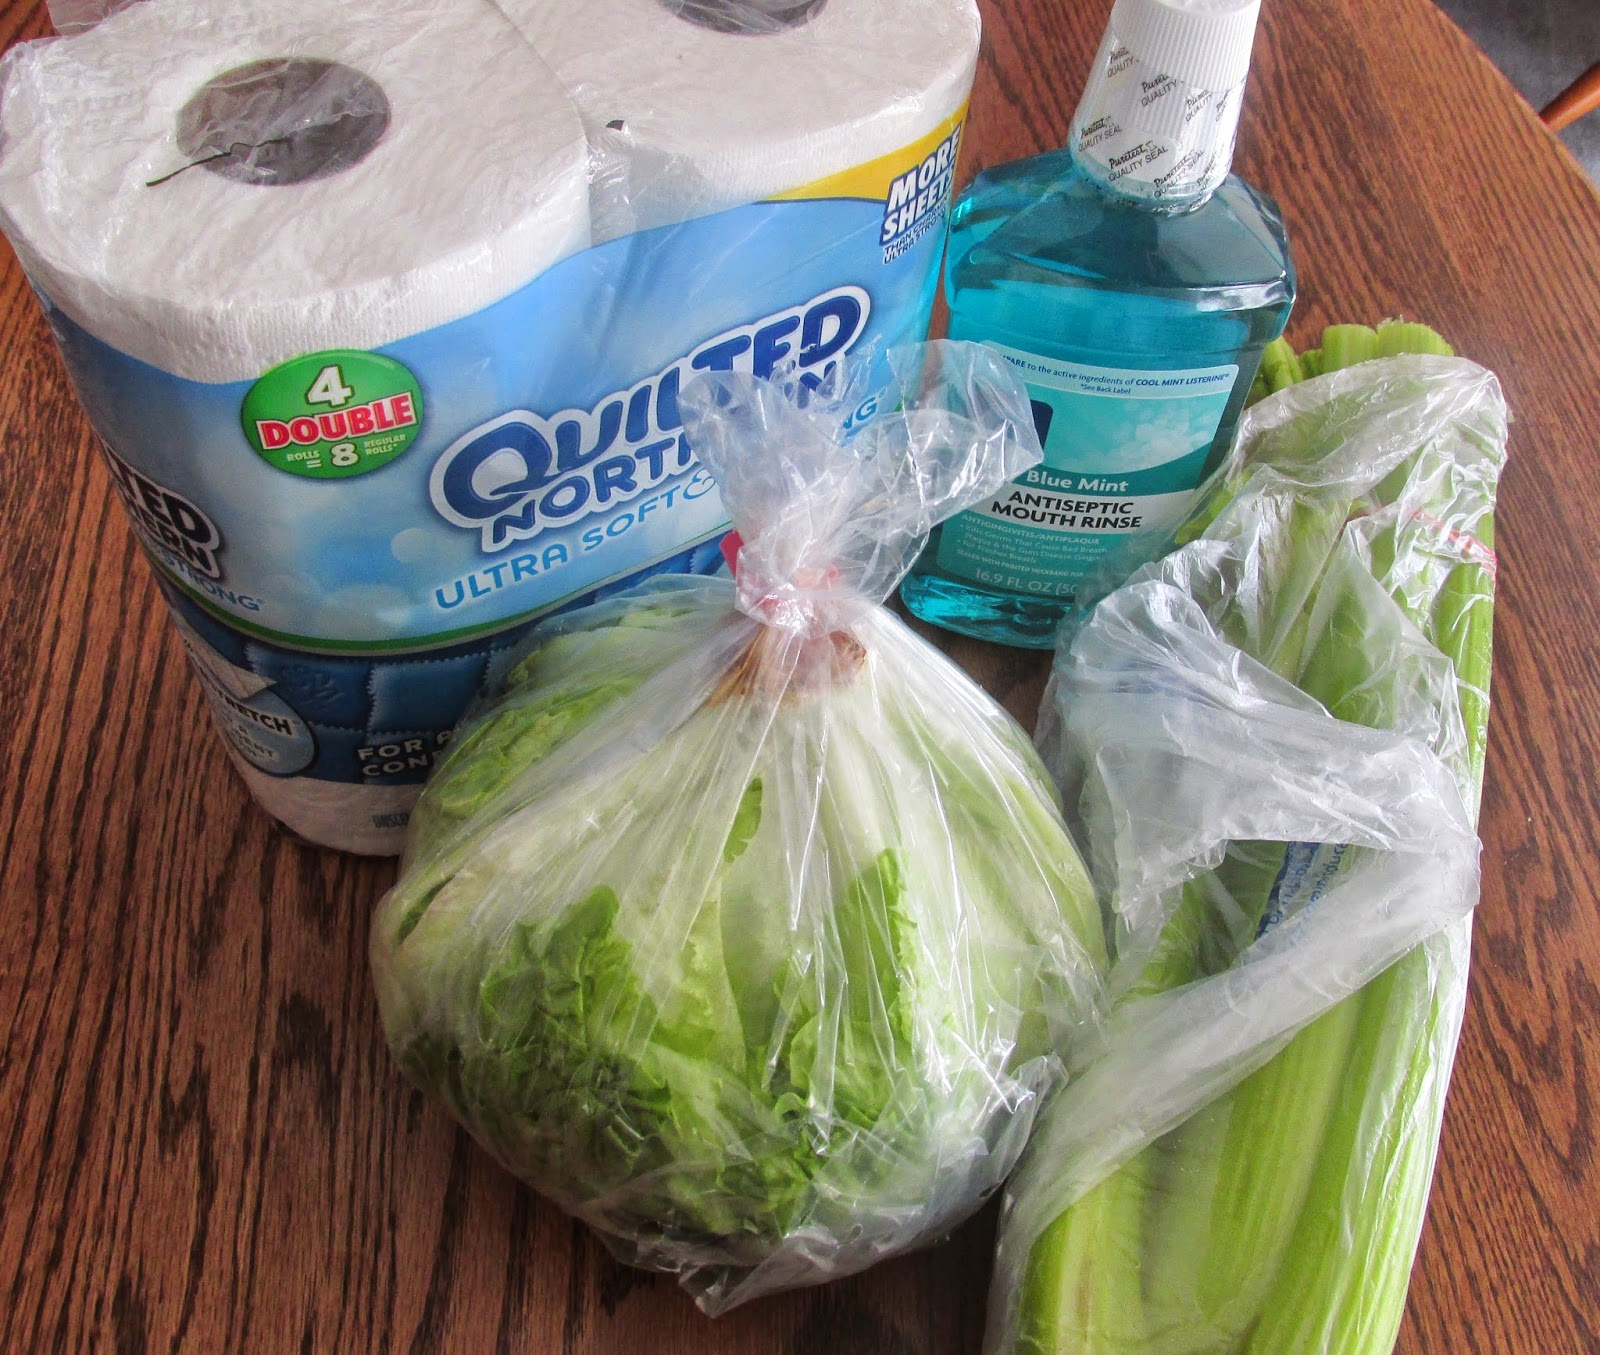 Picture of groceries from Kroger